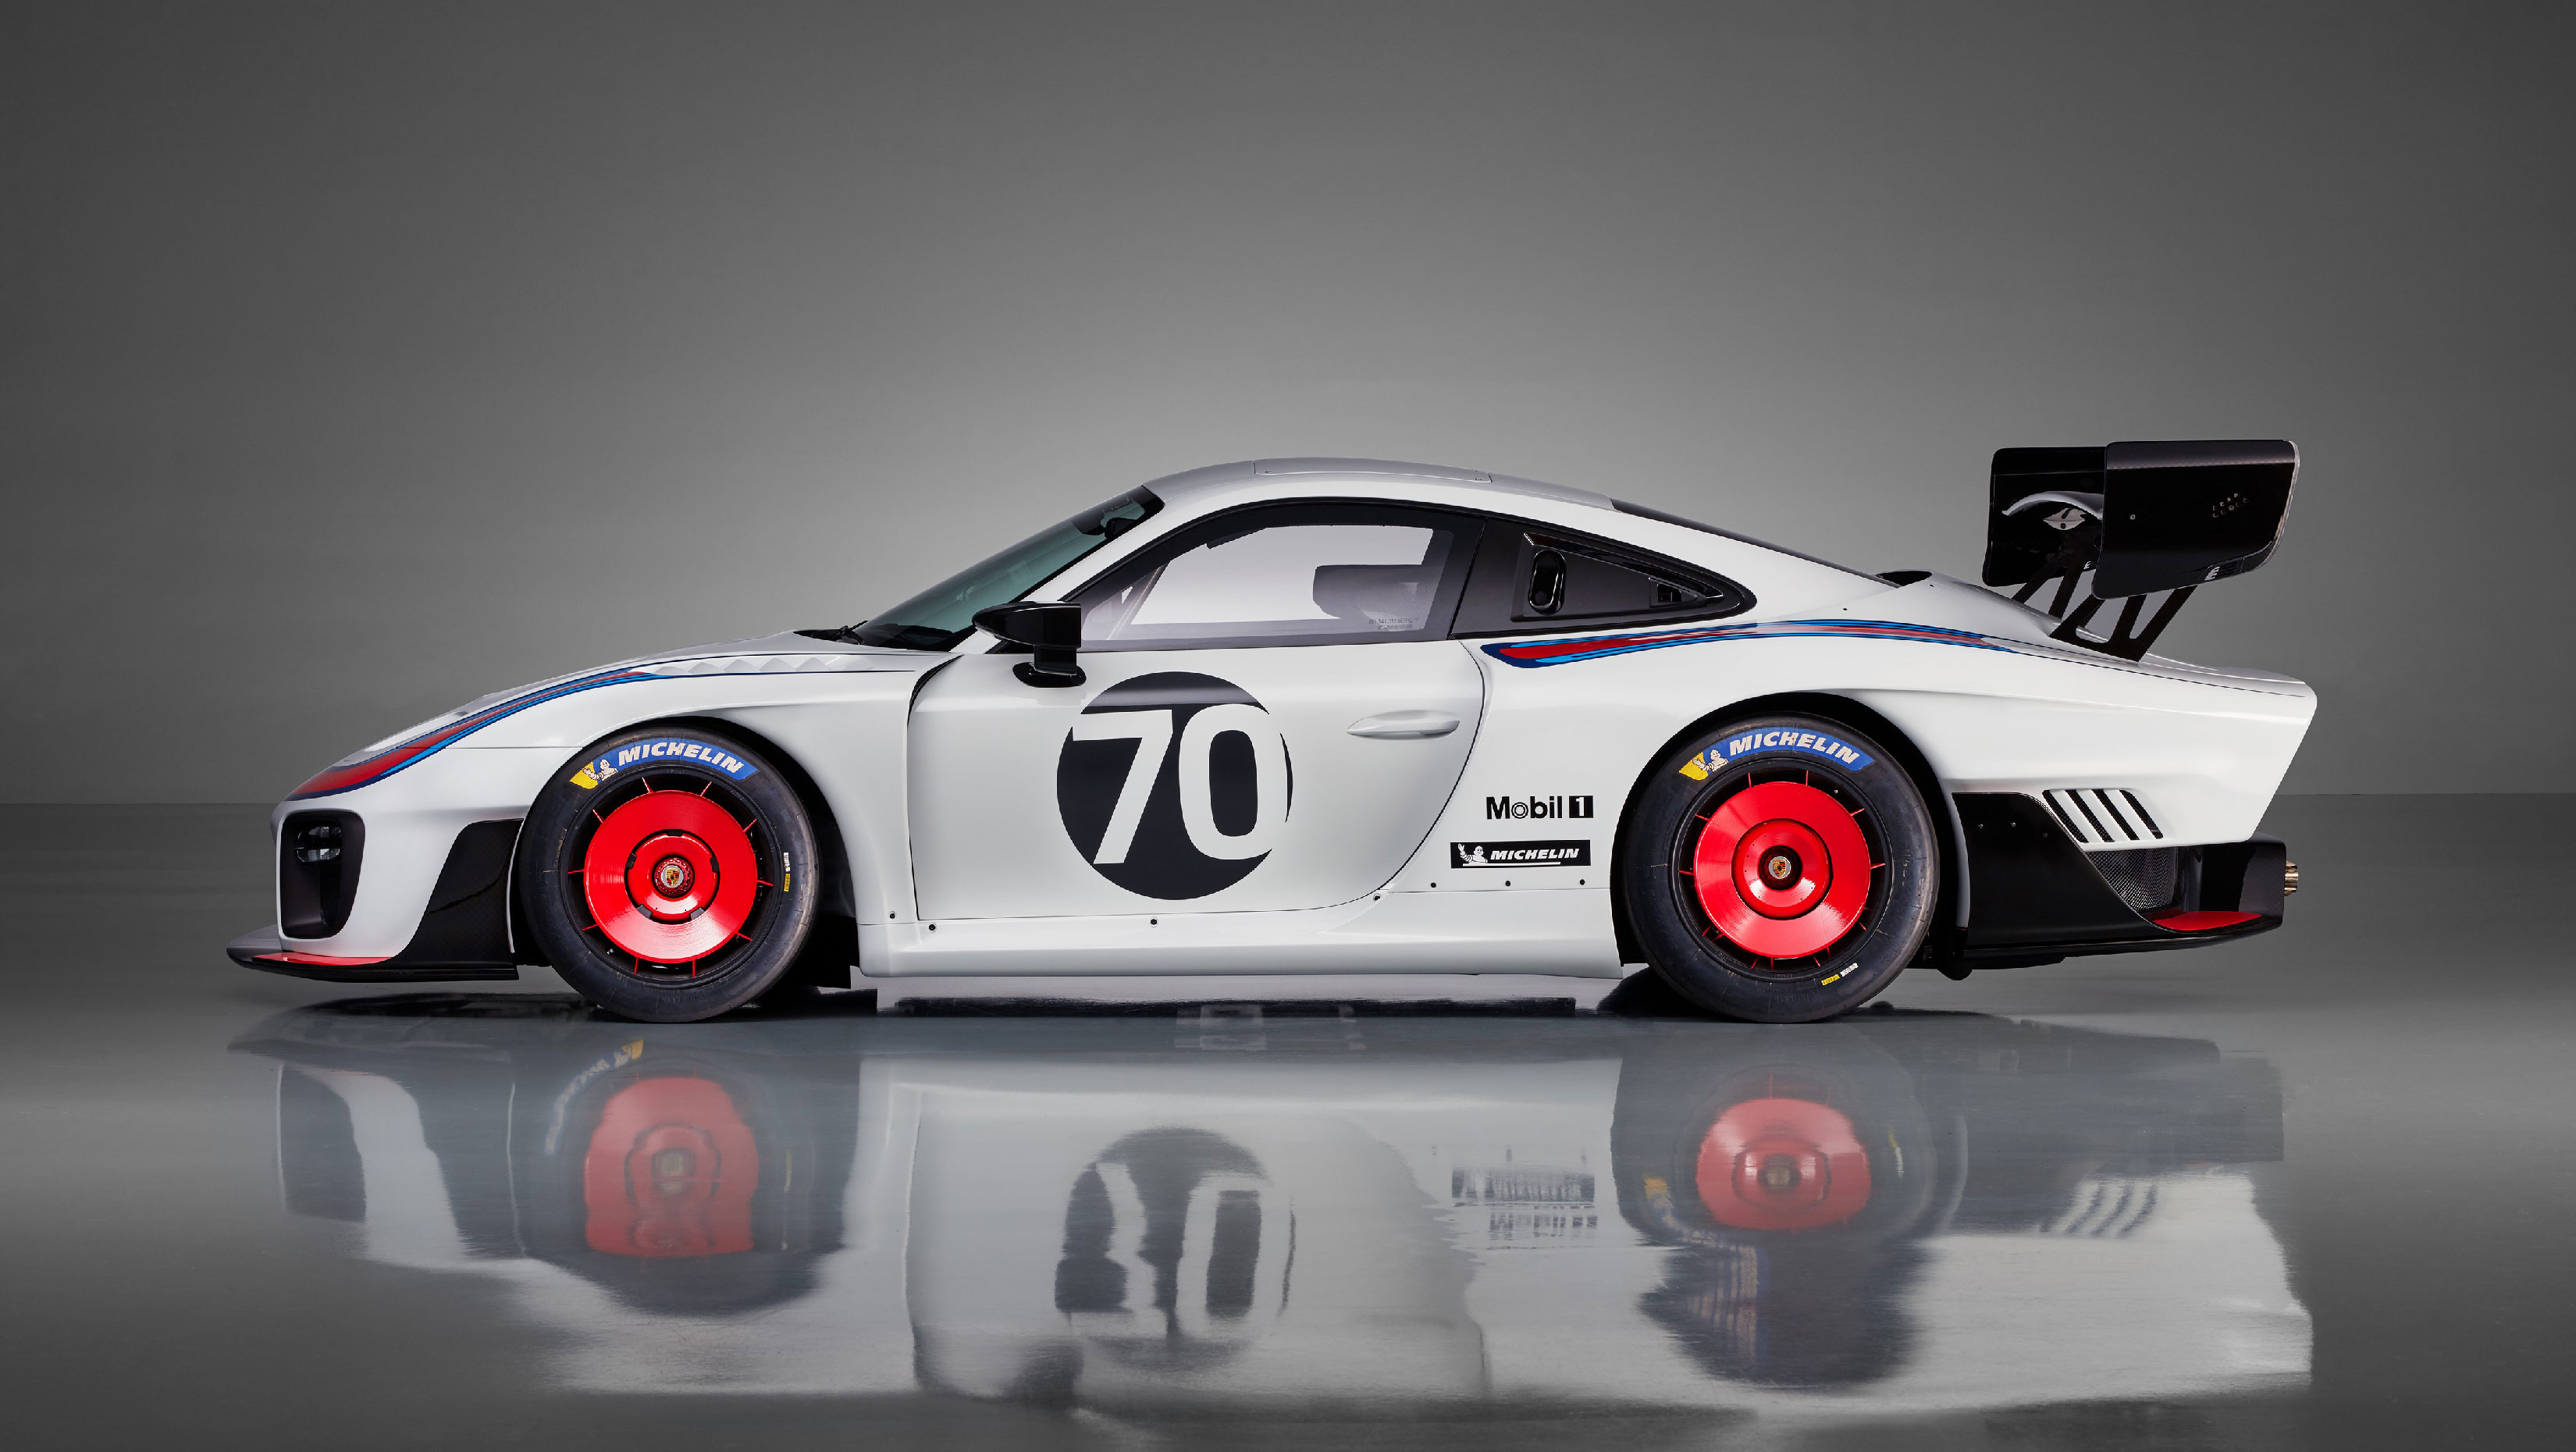 2018 Porsche 935 Type 991 Gen. 2 | Top Speed. »